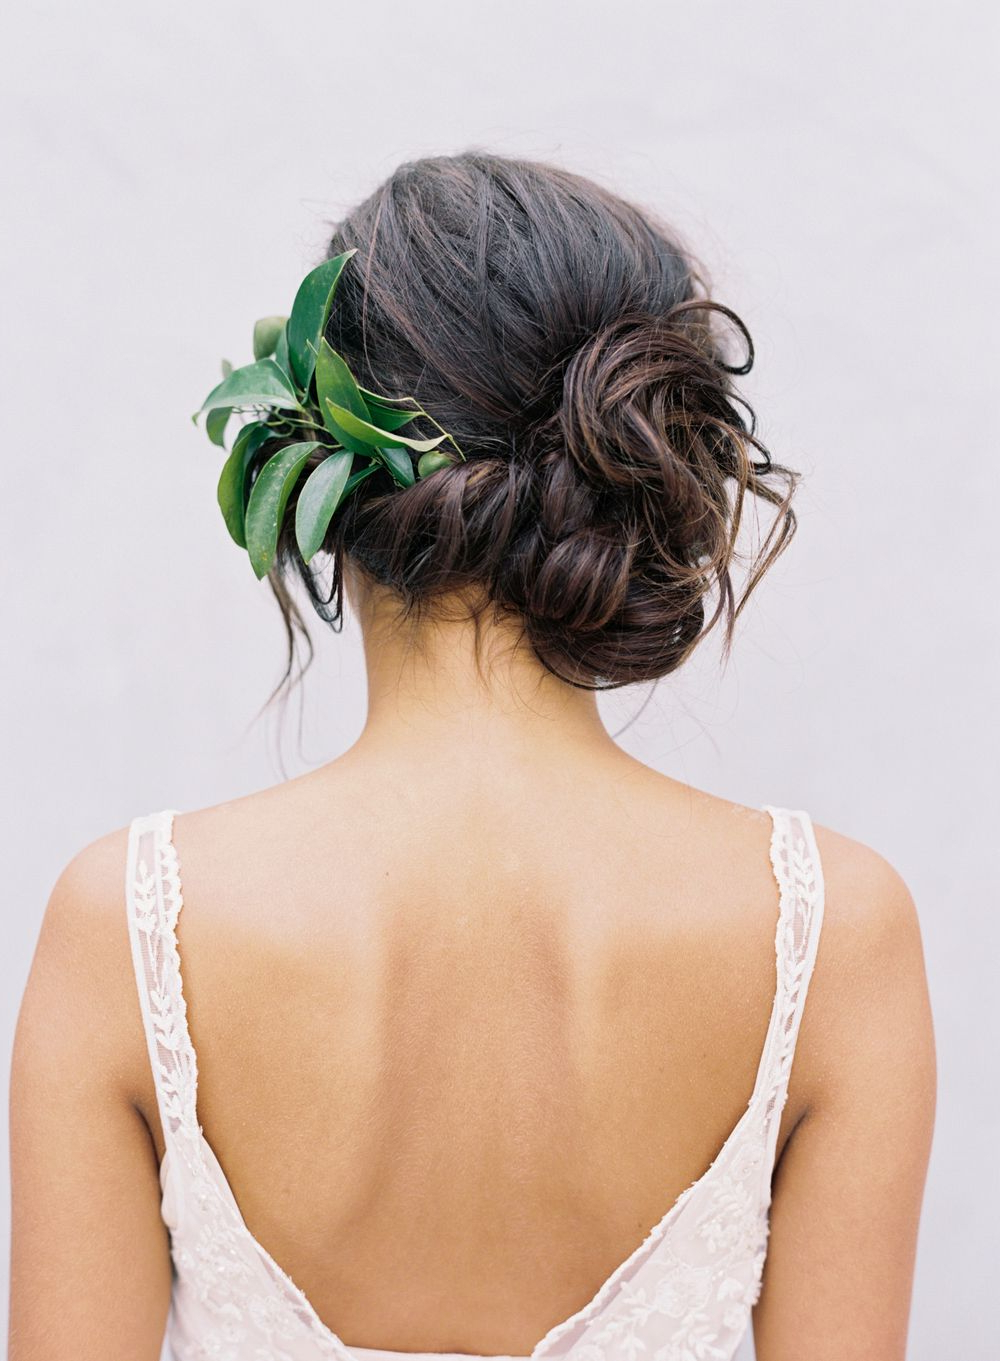 A Classic Wedding Updo, Loose Side Bun, Romantic Side Swept Updo Inside Favorite Side Bun Prom Hairstyles With Black Feathers (View 5 of 20)